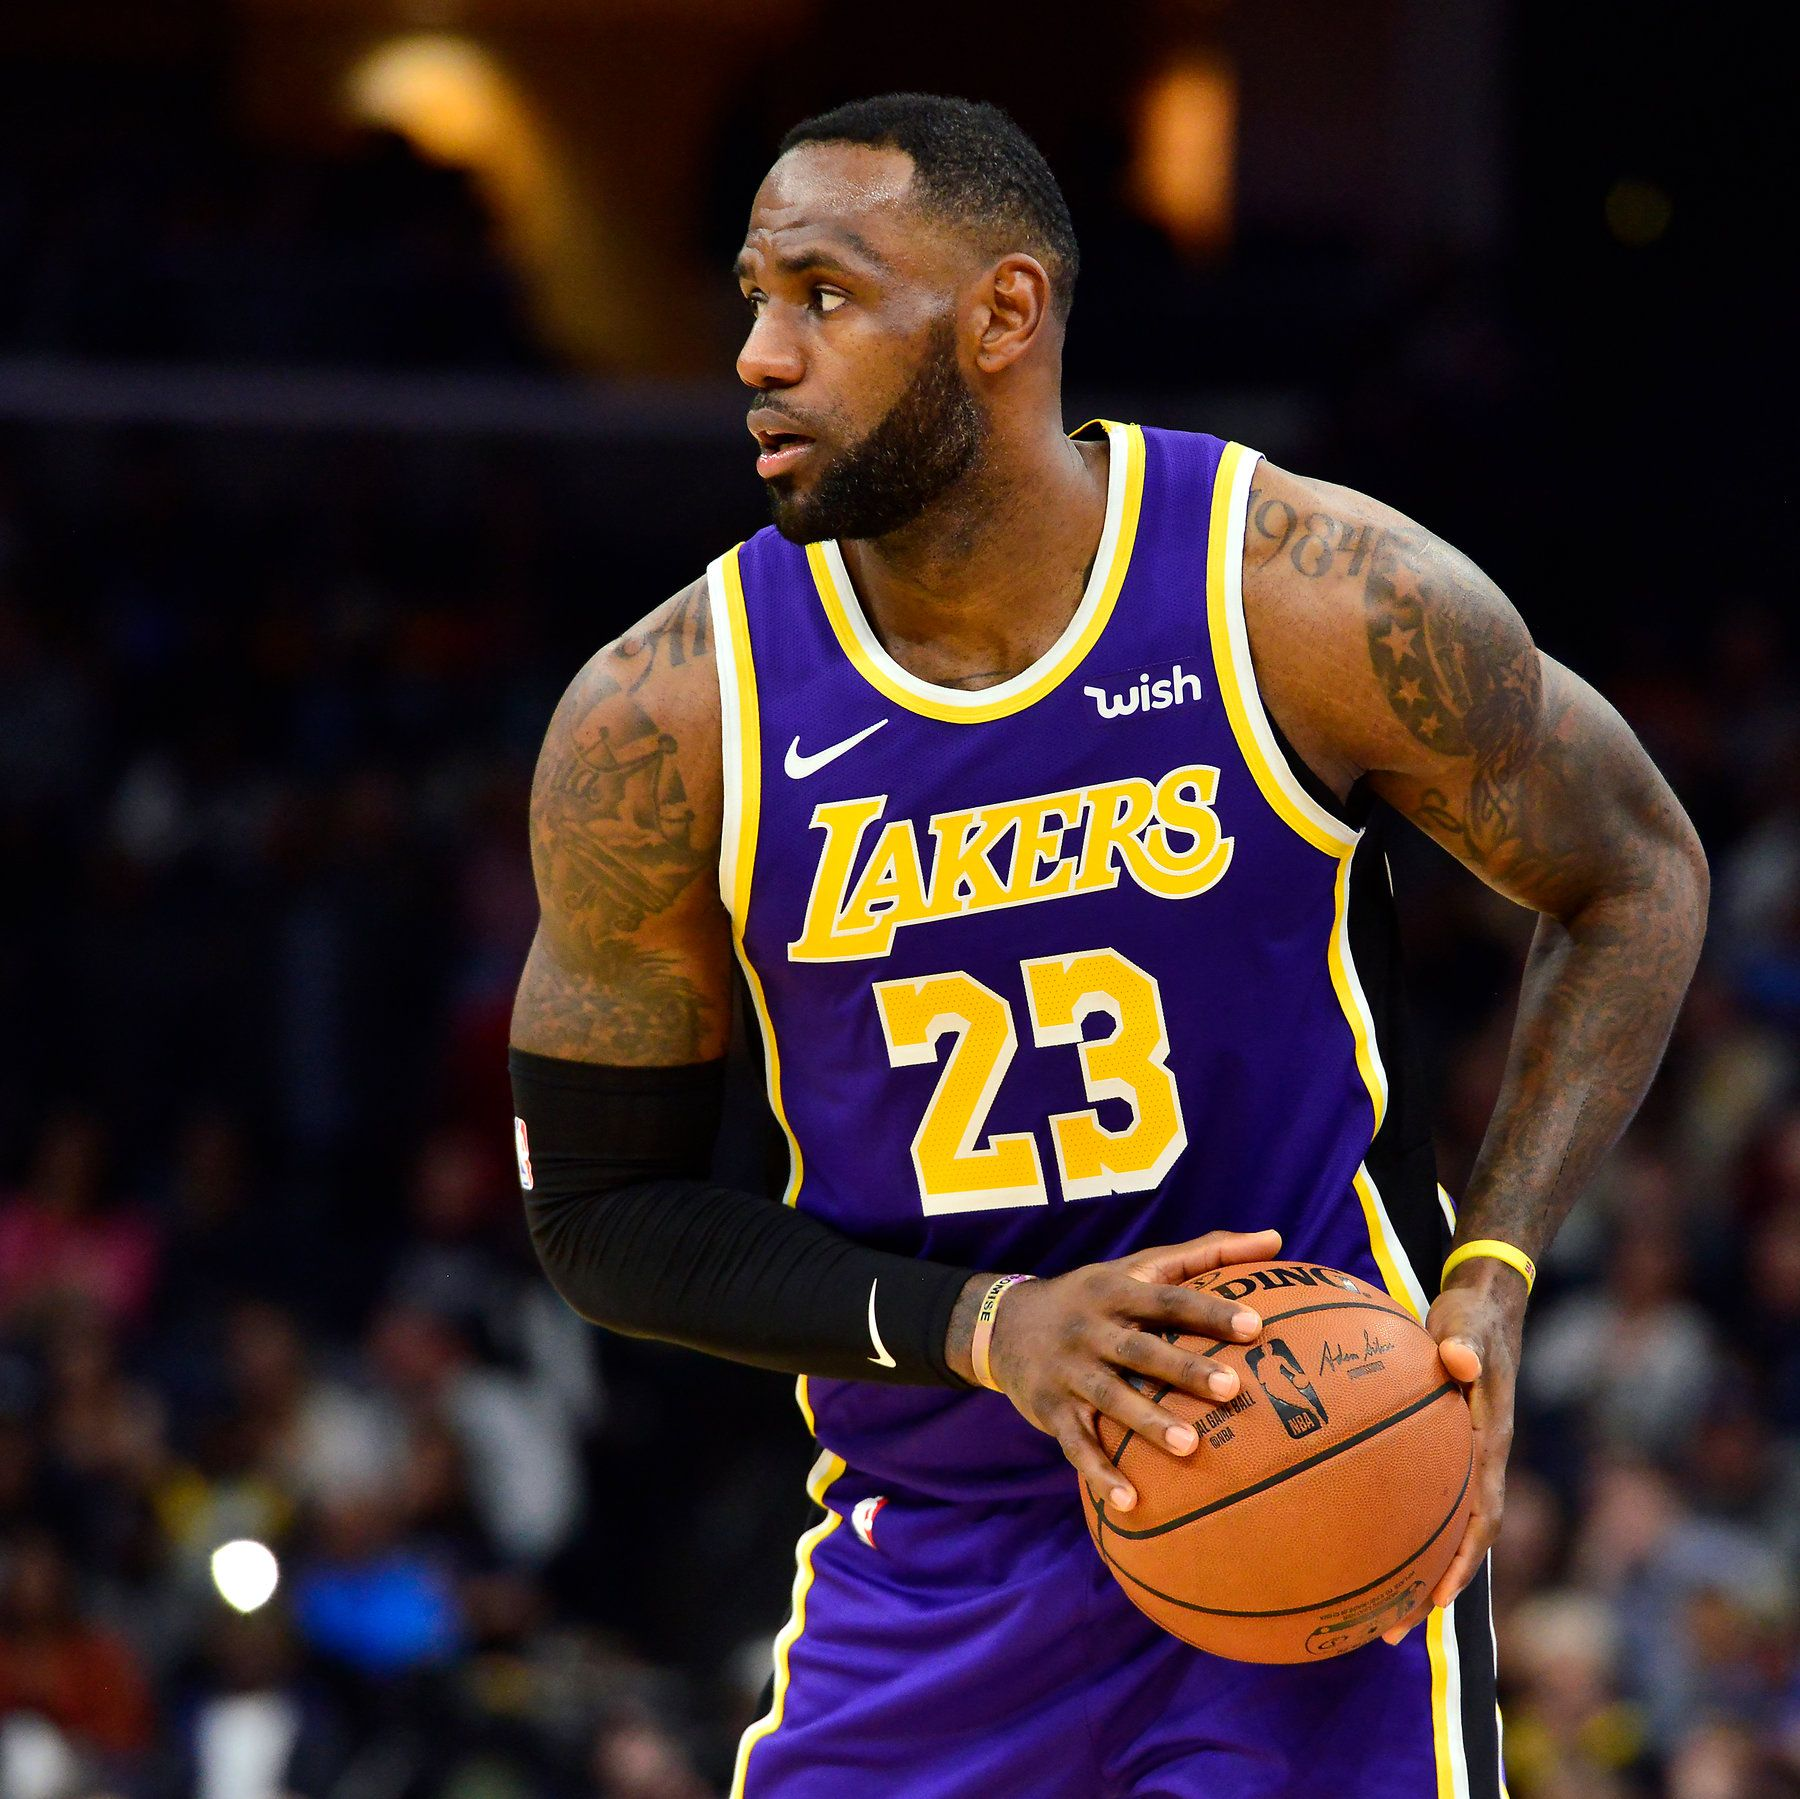 Lebron James killed in car accident